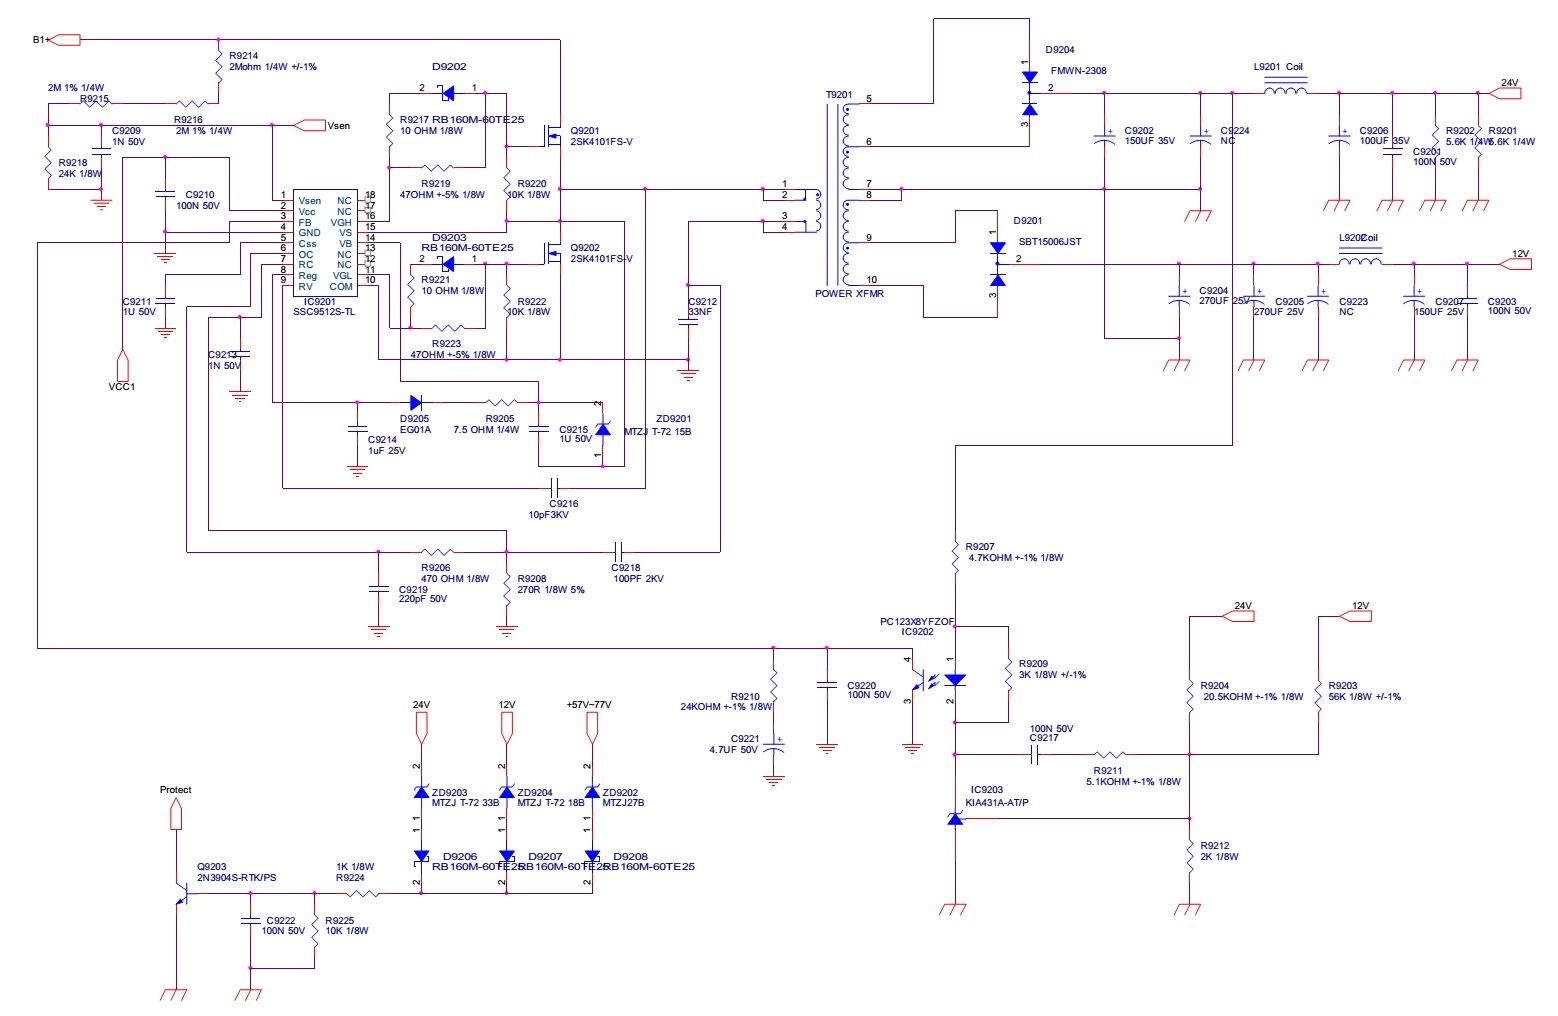 Lg Led Tv Circuit Diagram 25 Wiring Images Power Supply Smps Schematic Using Buz91 Fig 6 Haier Le32c13200 Le40c13800 And Inverter